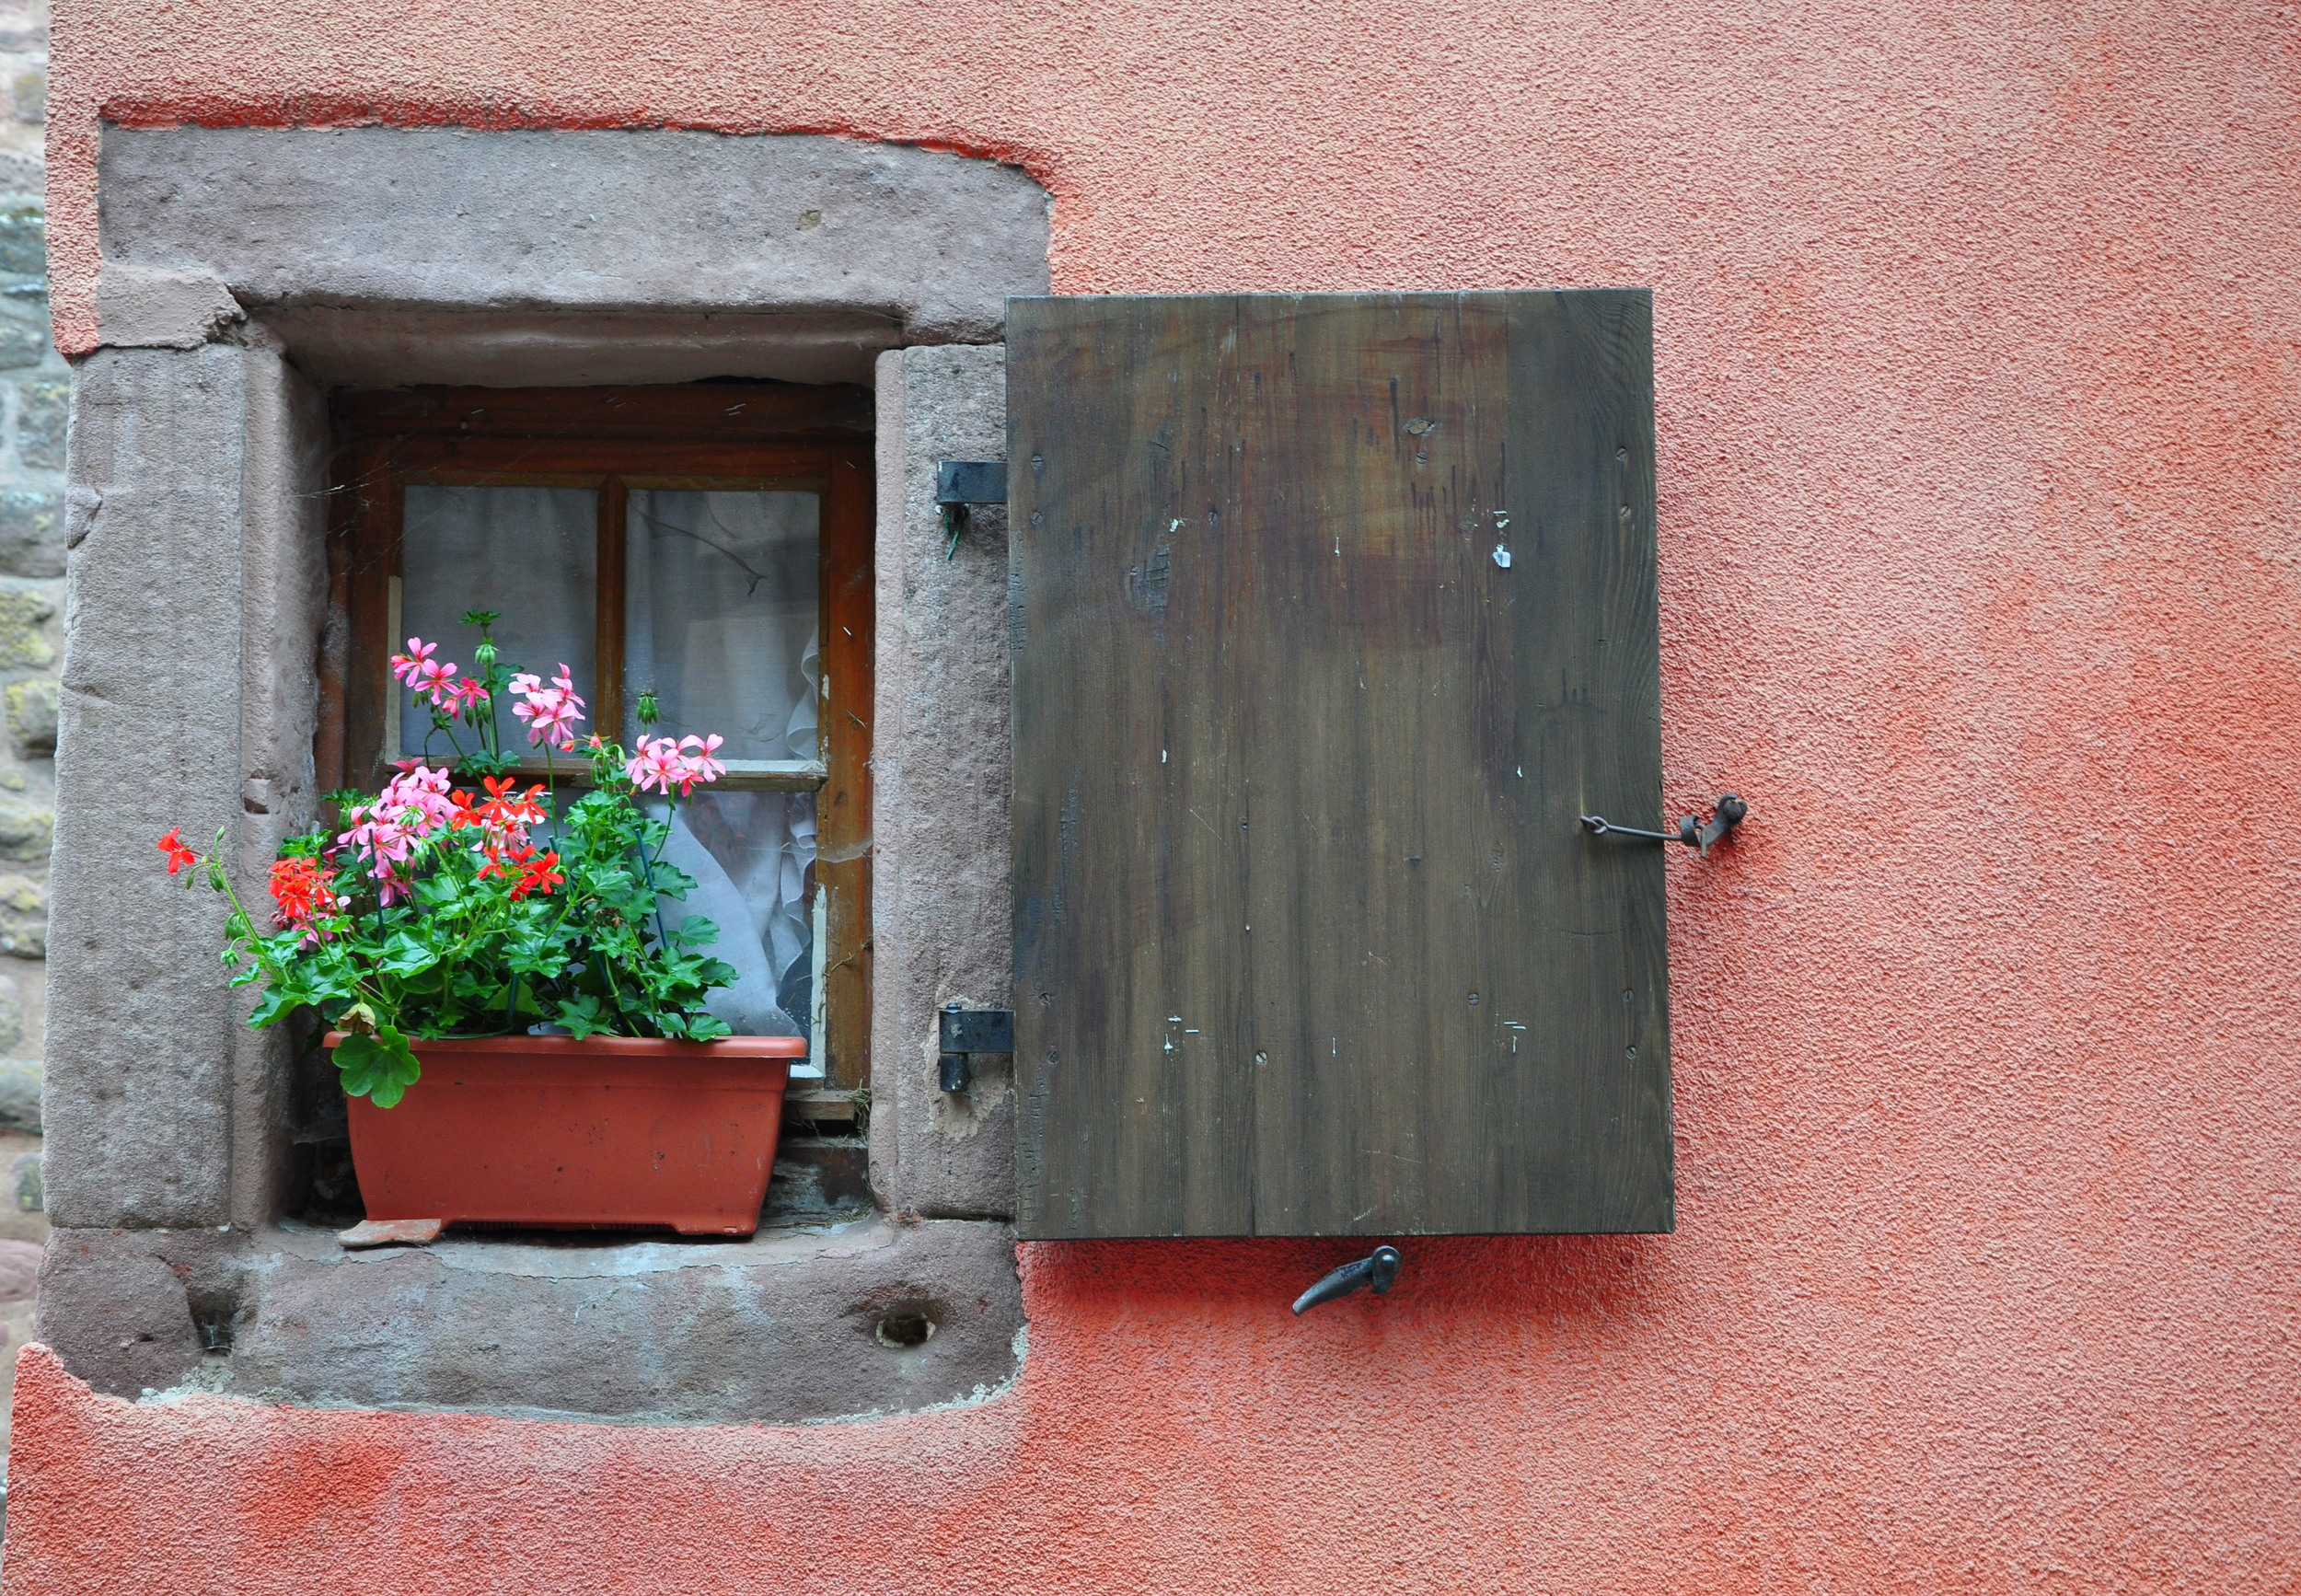 Window in Riquewihr  ©Copyright 2015 Bridget Barnes